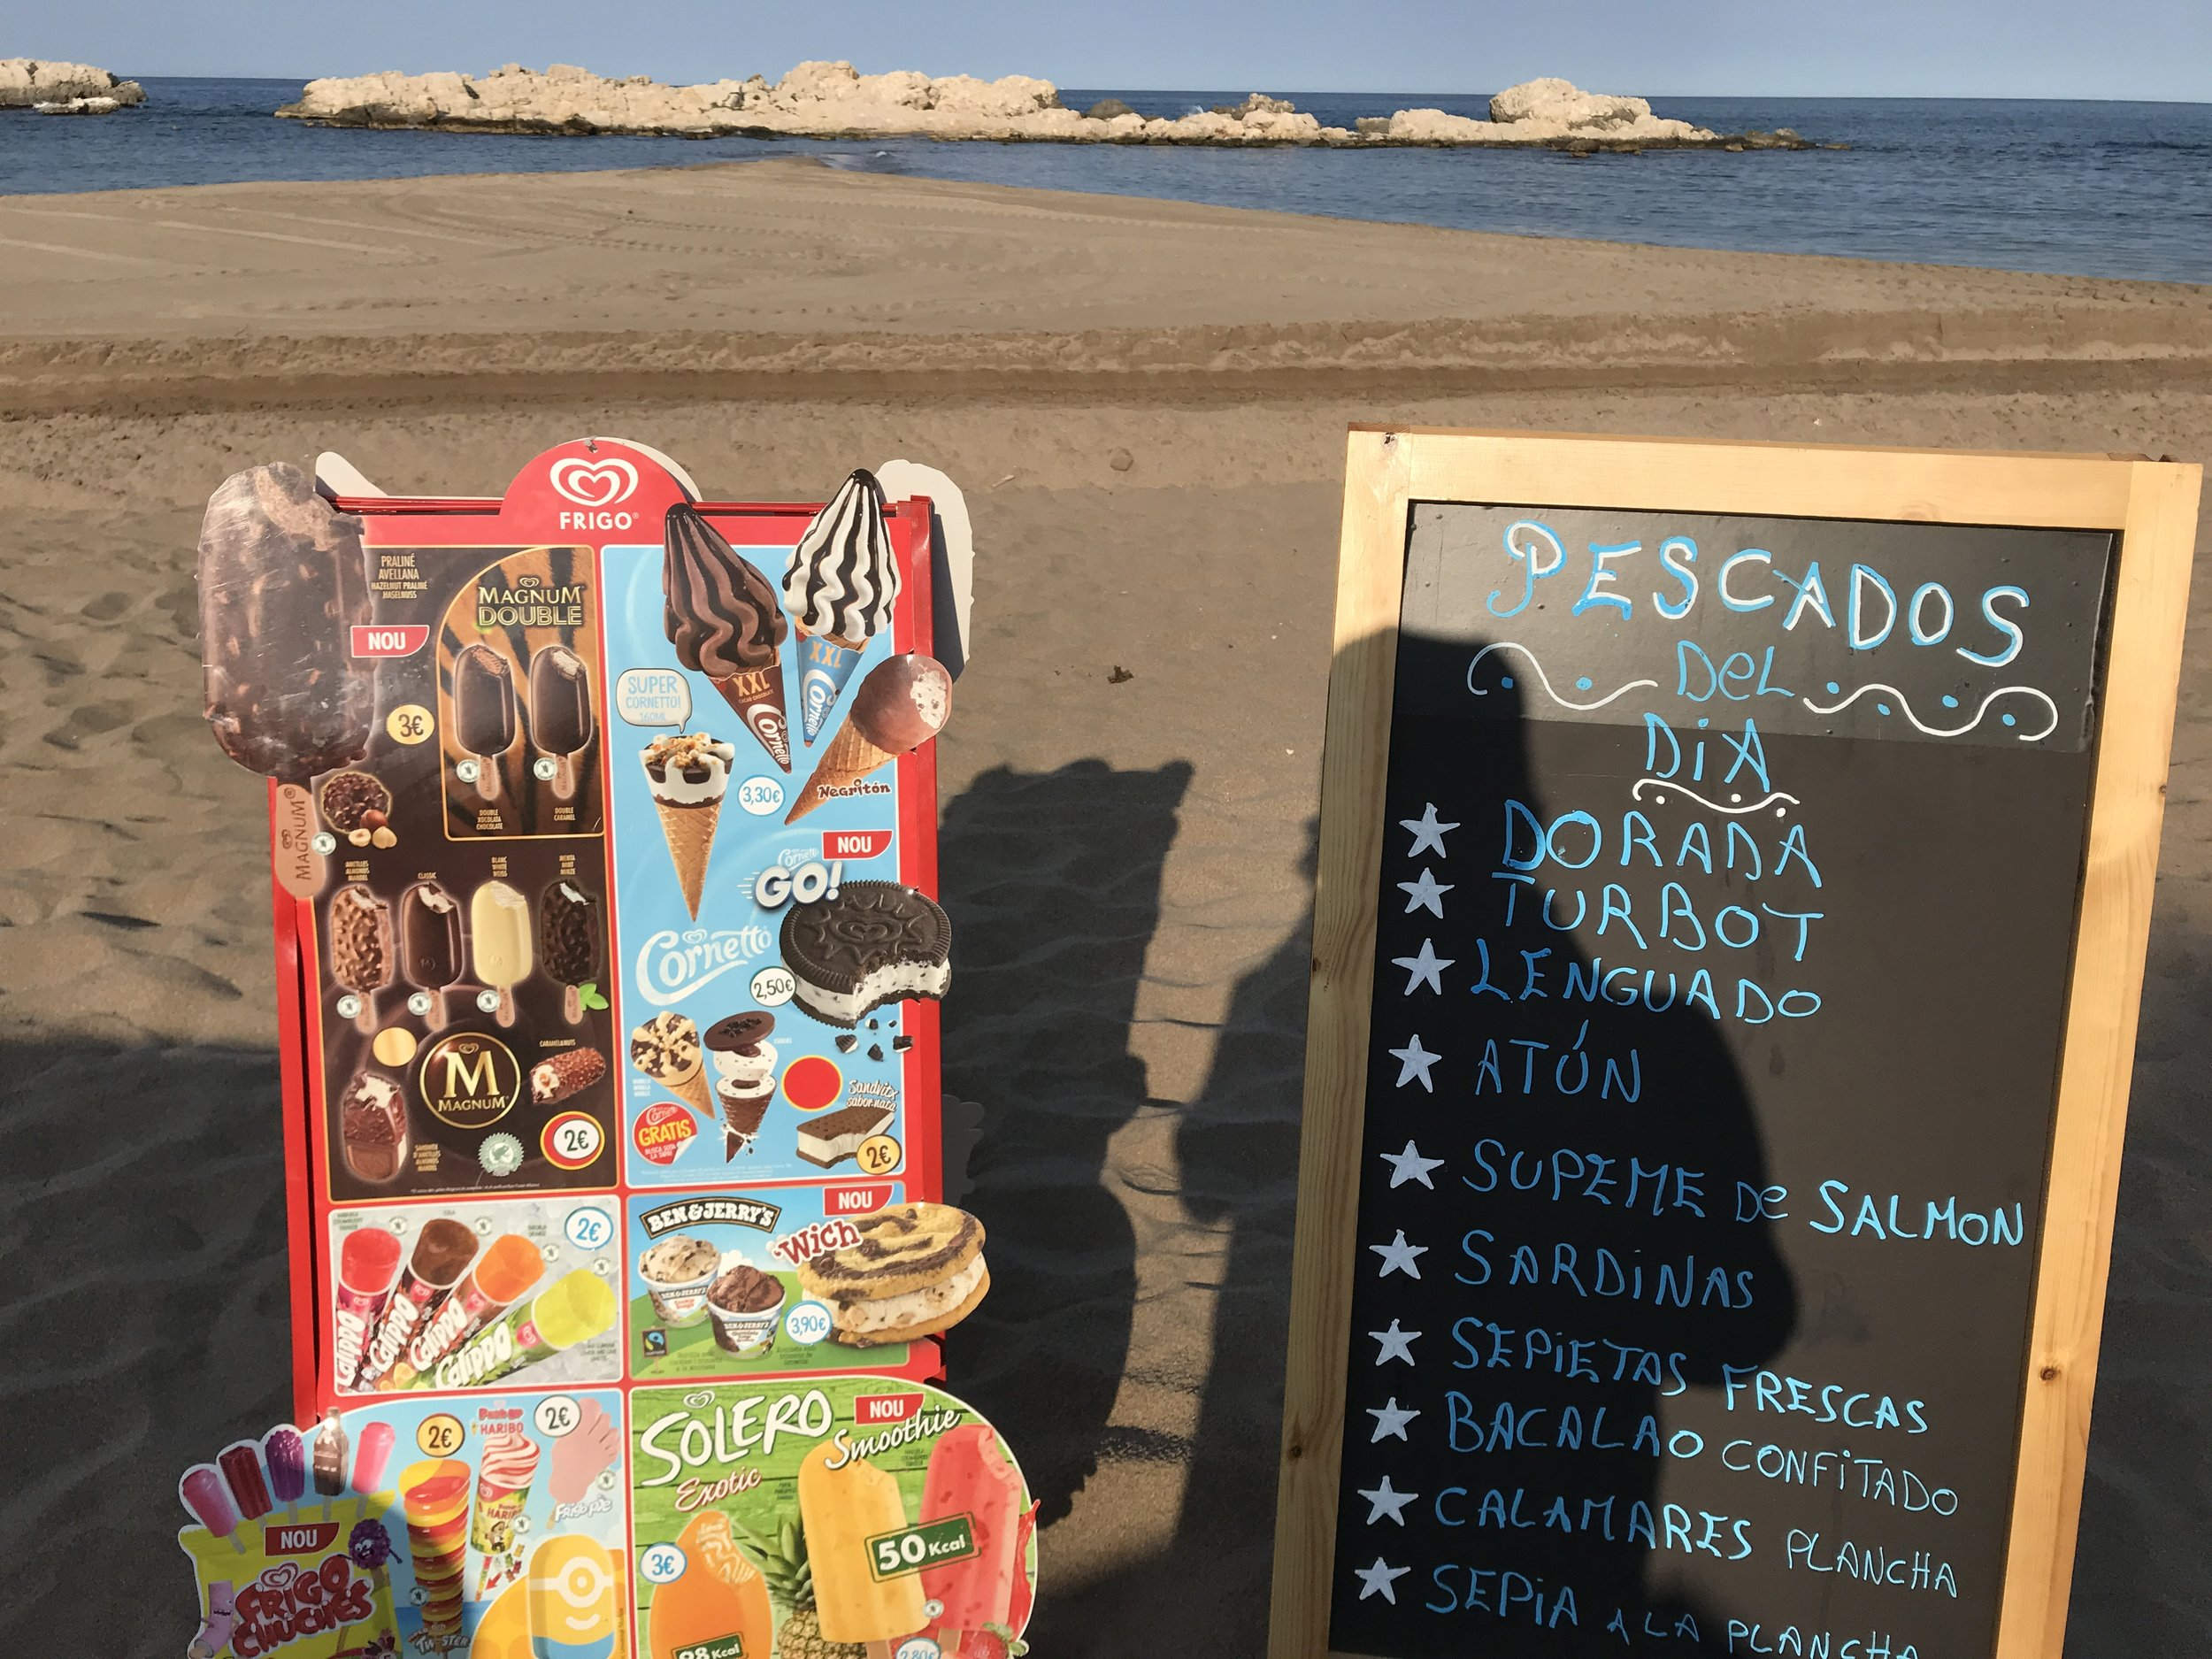 """Even in the off-season we found an open """"chiringita"""" for great coffees on our favorite beach, Sant Marti d'Empuries. This is the other part of Spain where the Phoenicians, Greeks, and Romans traded and left beautiful intact ruins."""